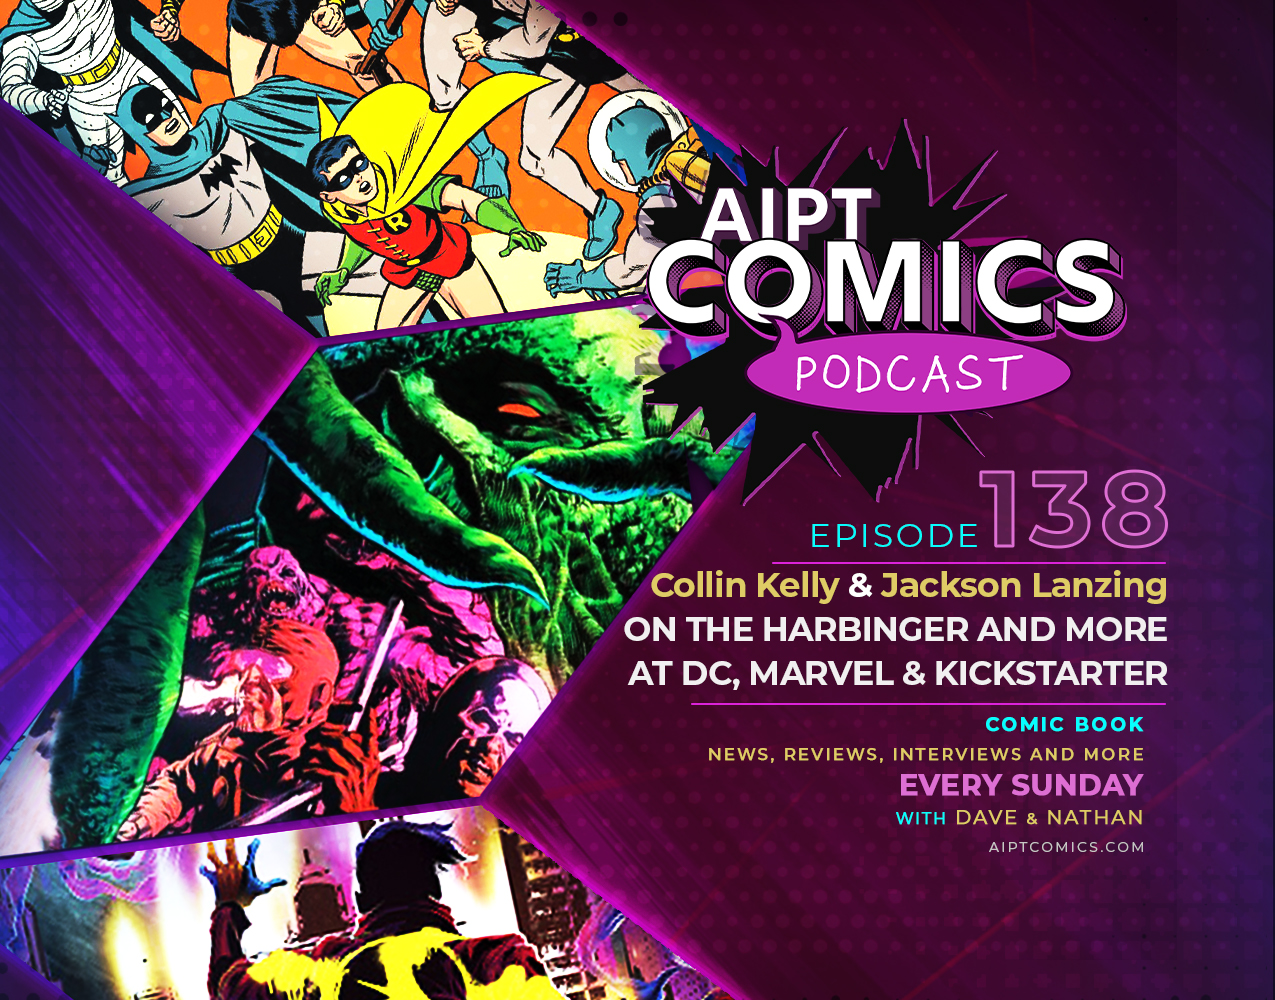 AIPT Comics podcast episode 138: Collin Kelly and Jackson Lanzing on 'The Harbinger' and titles at DC, Marvel & more